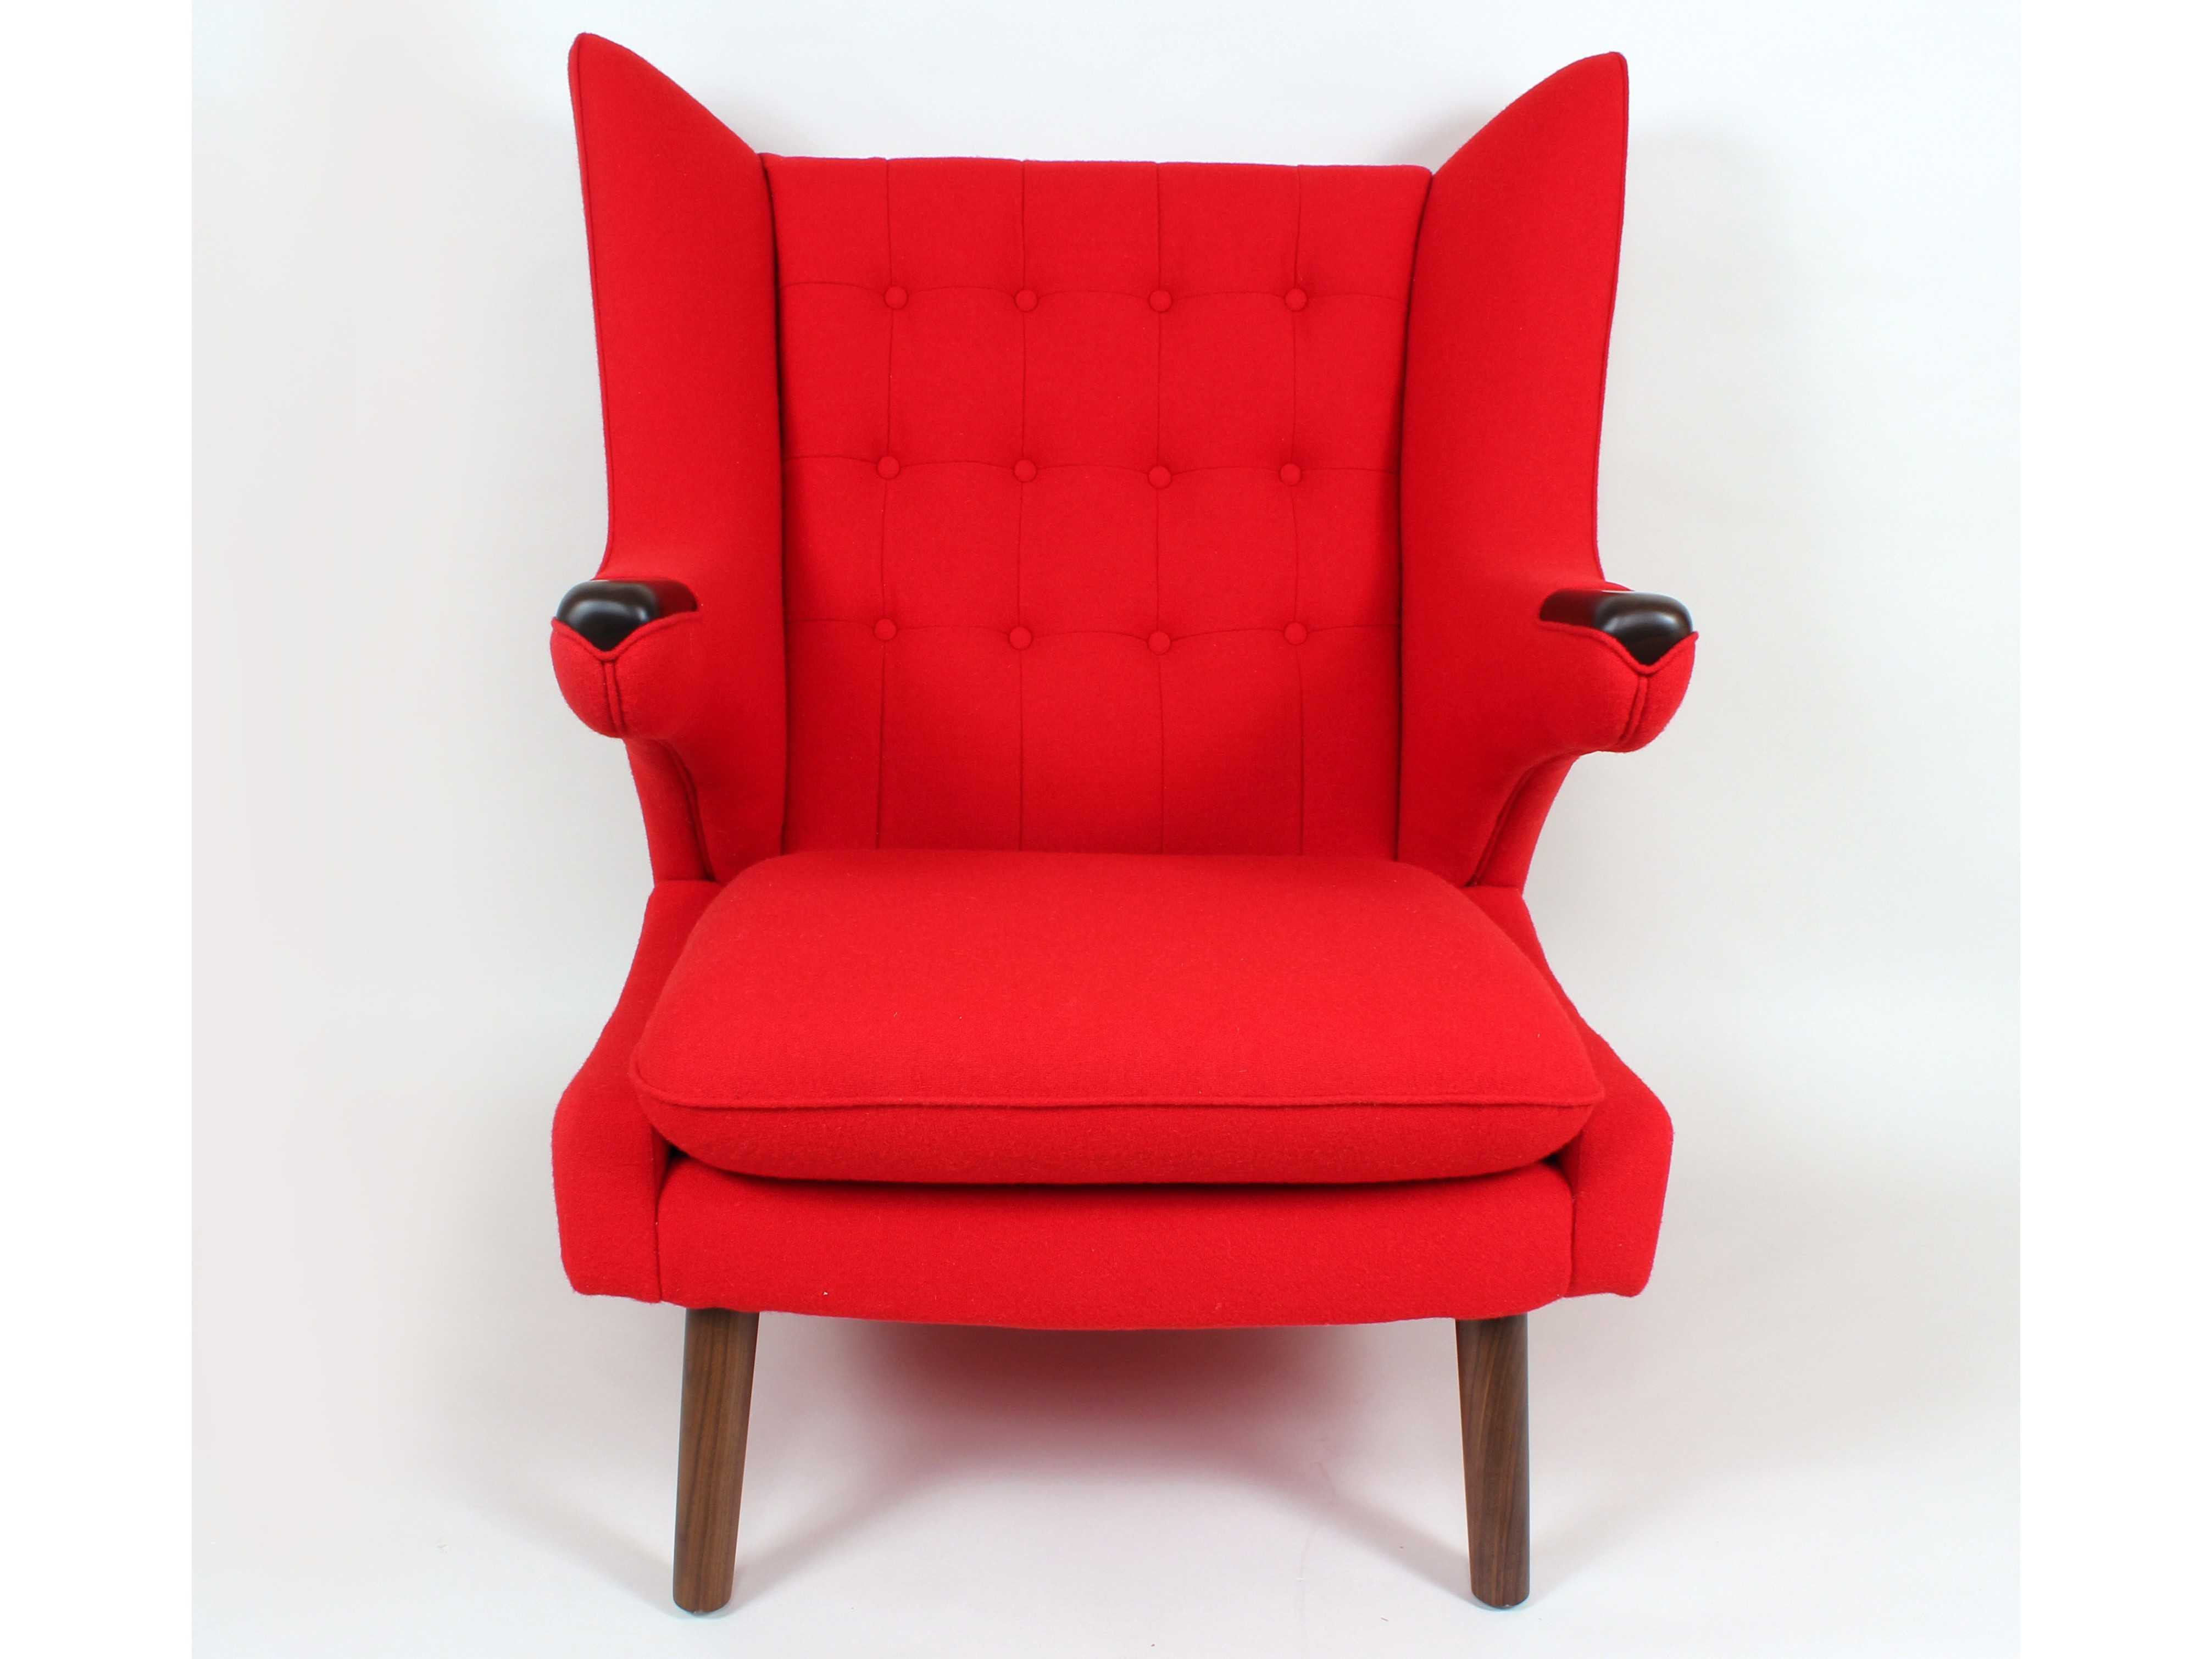 Red Accents Stilnovo Olsen Red Accent Chair Fb759red